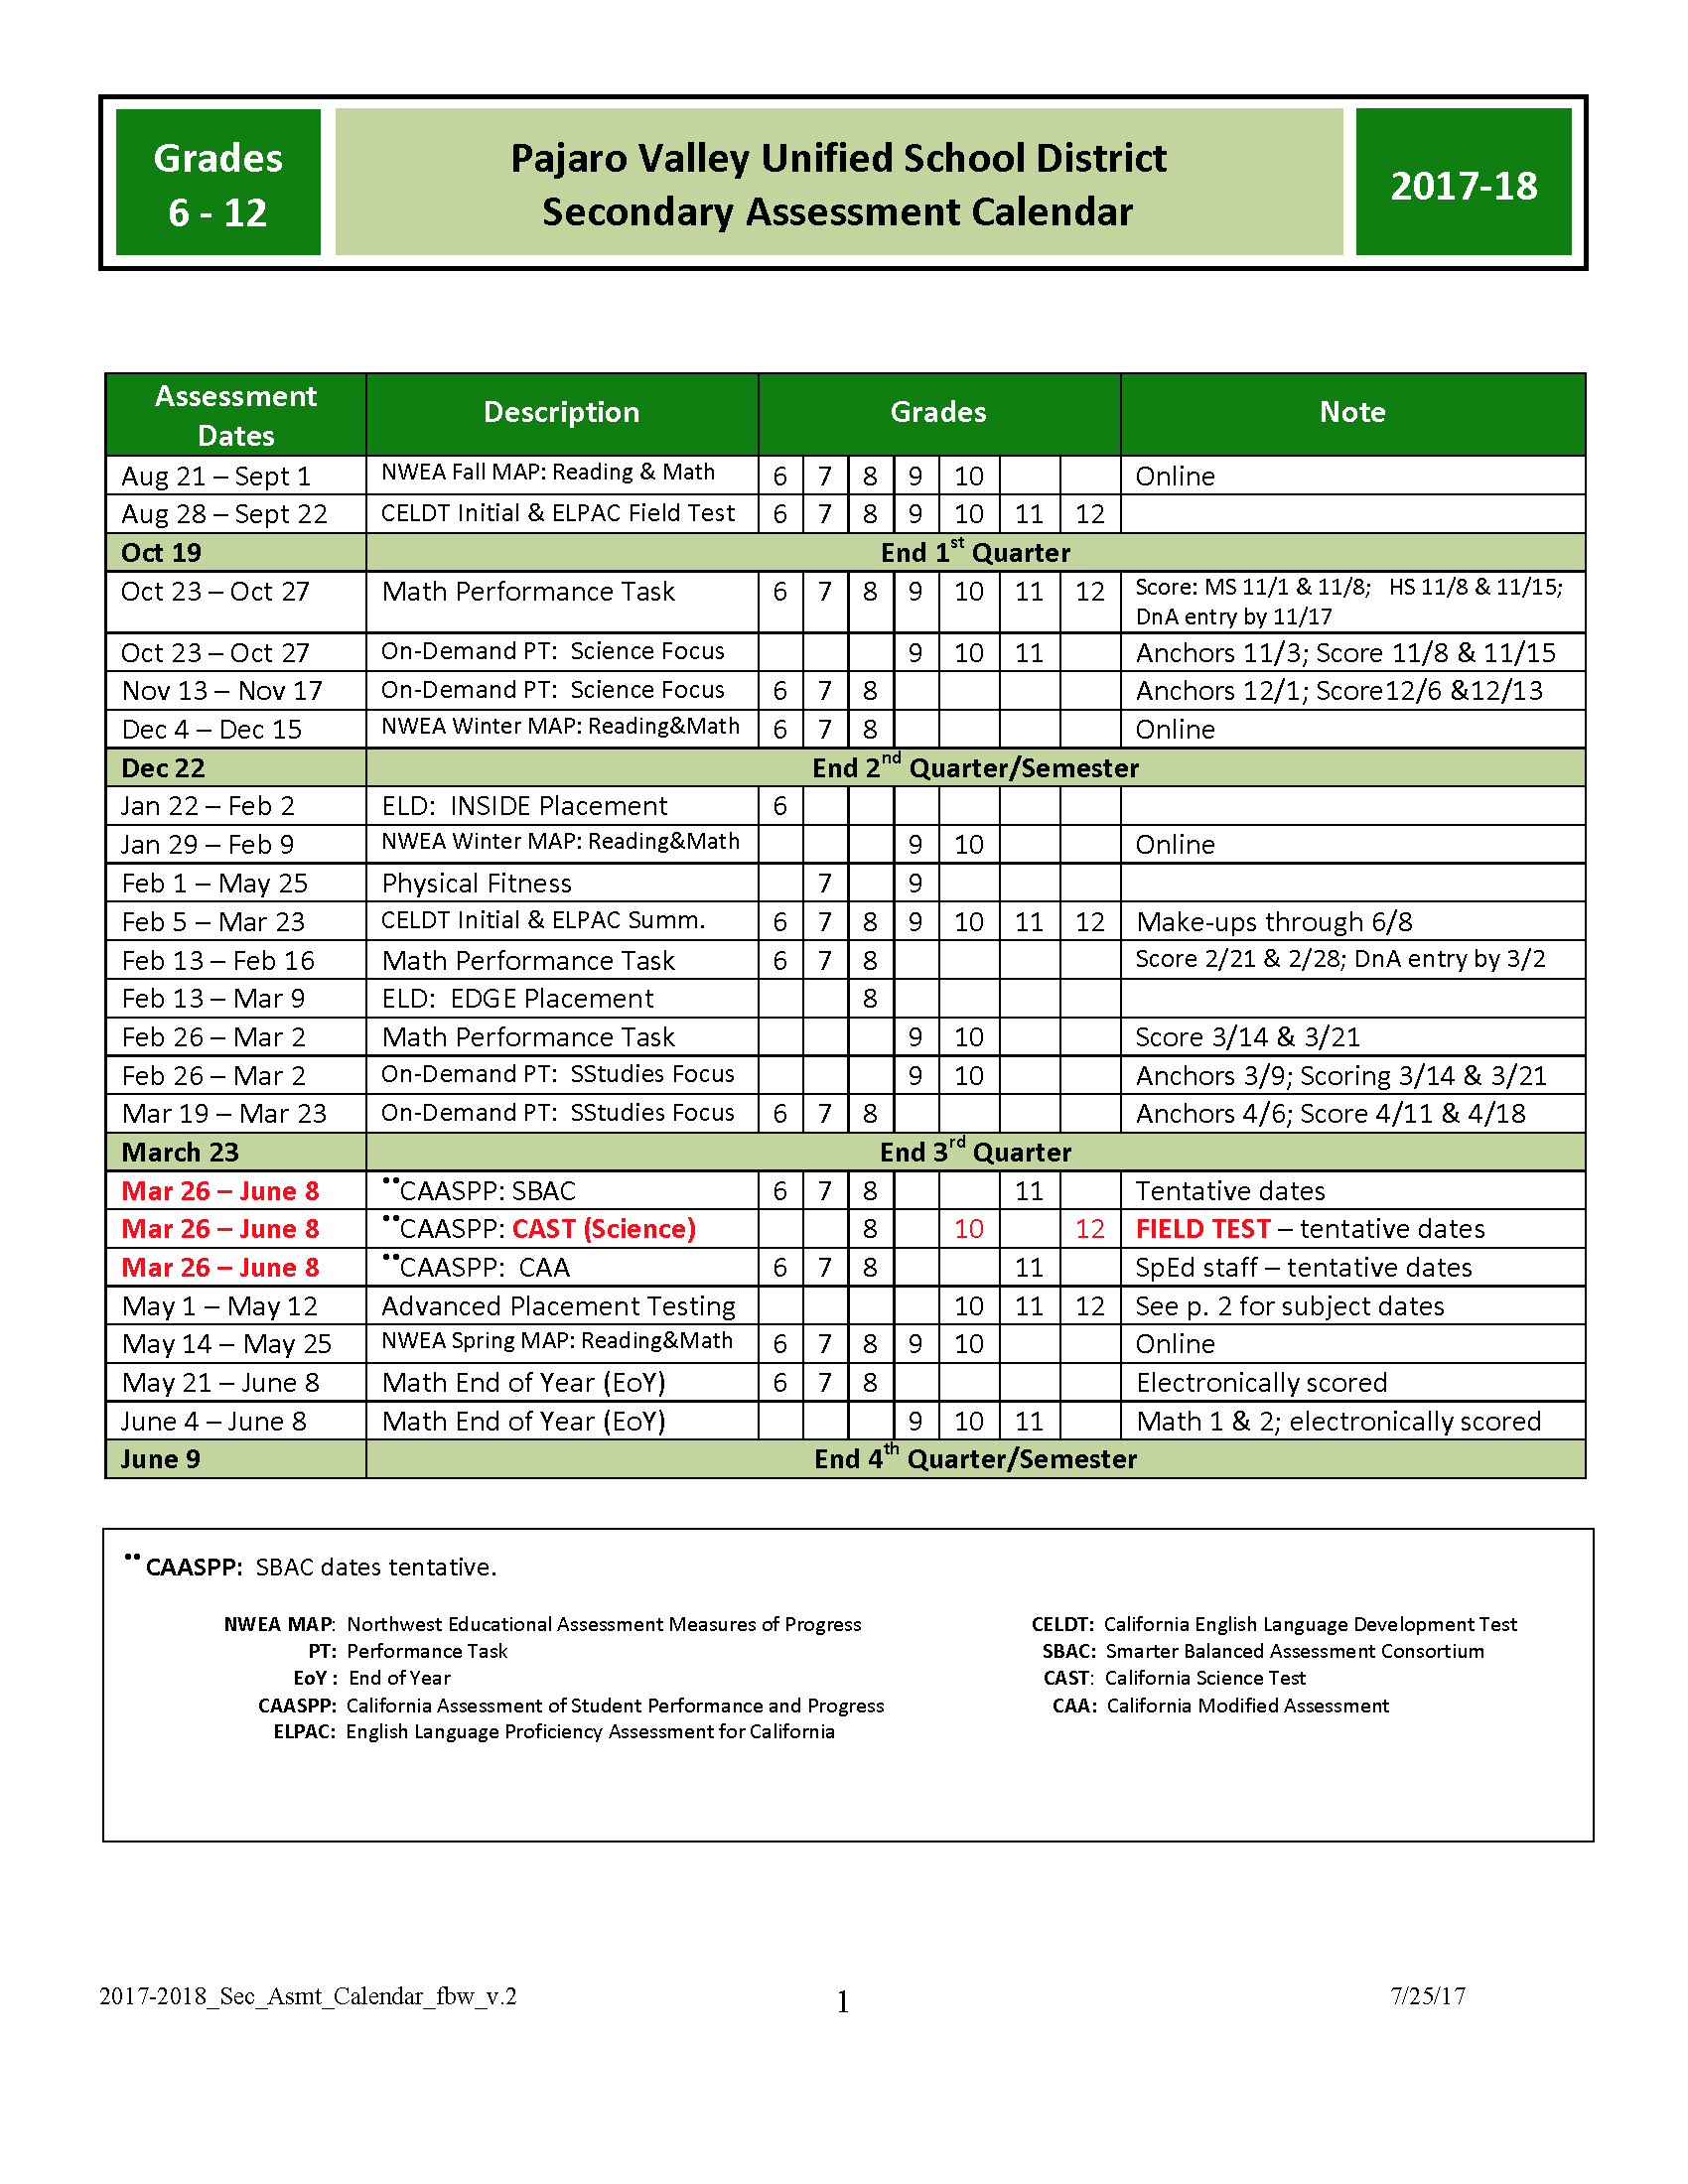 Secondary Assessment Calendar 2017-18_Page_1.png